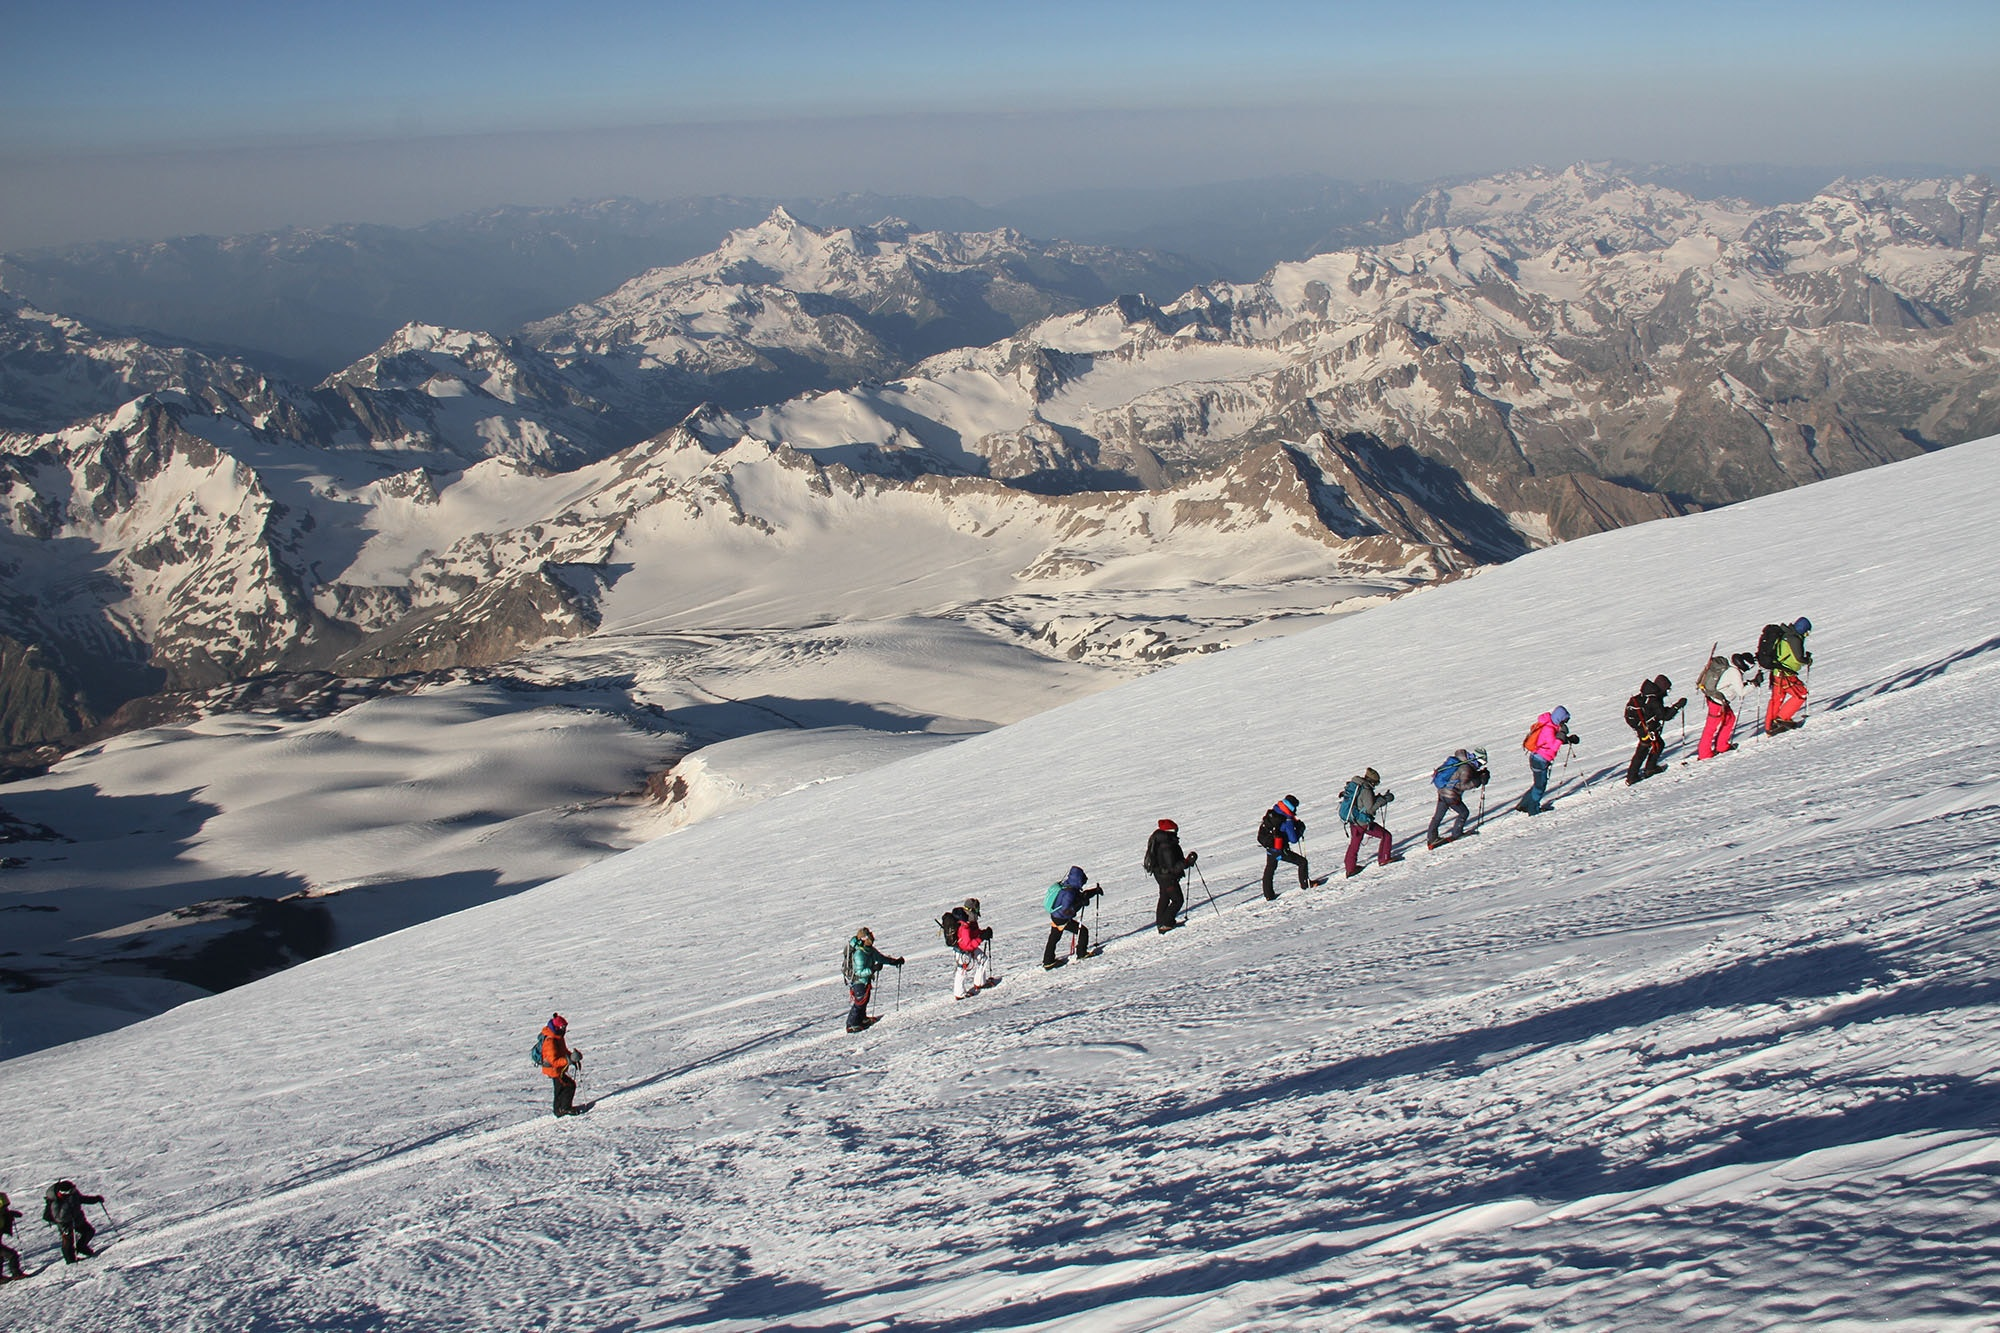 The WHOA group of women—armed with trekking poles, ice axes, harnesses, and crampons—climbed Russia's Mount Elbrus.